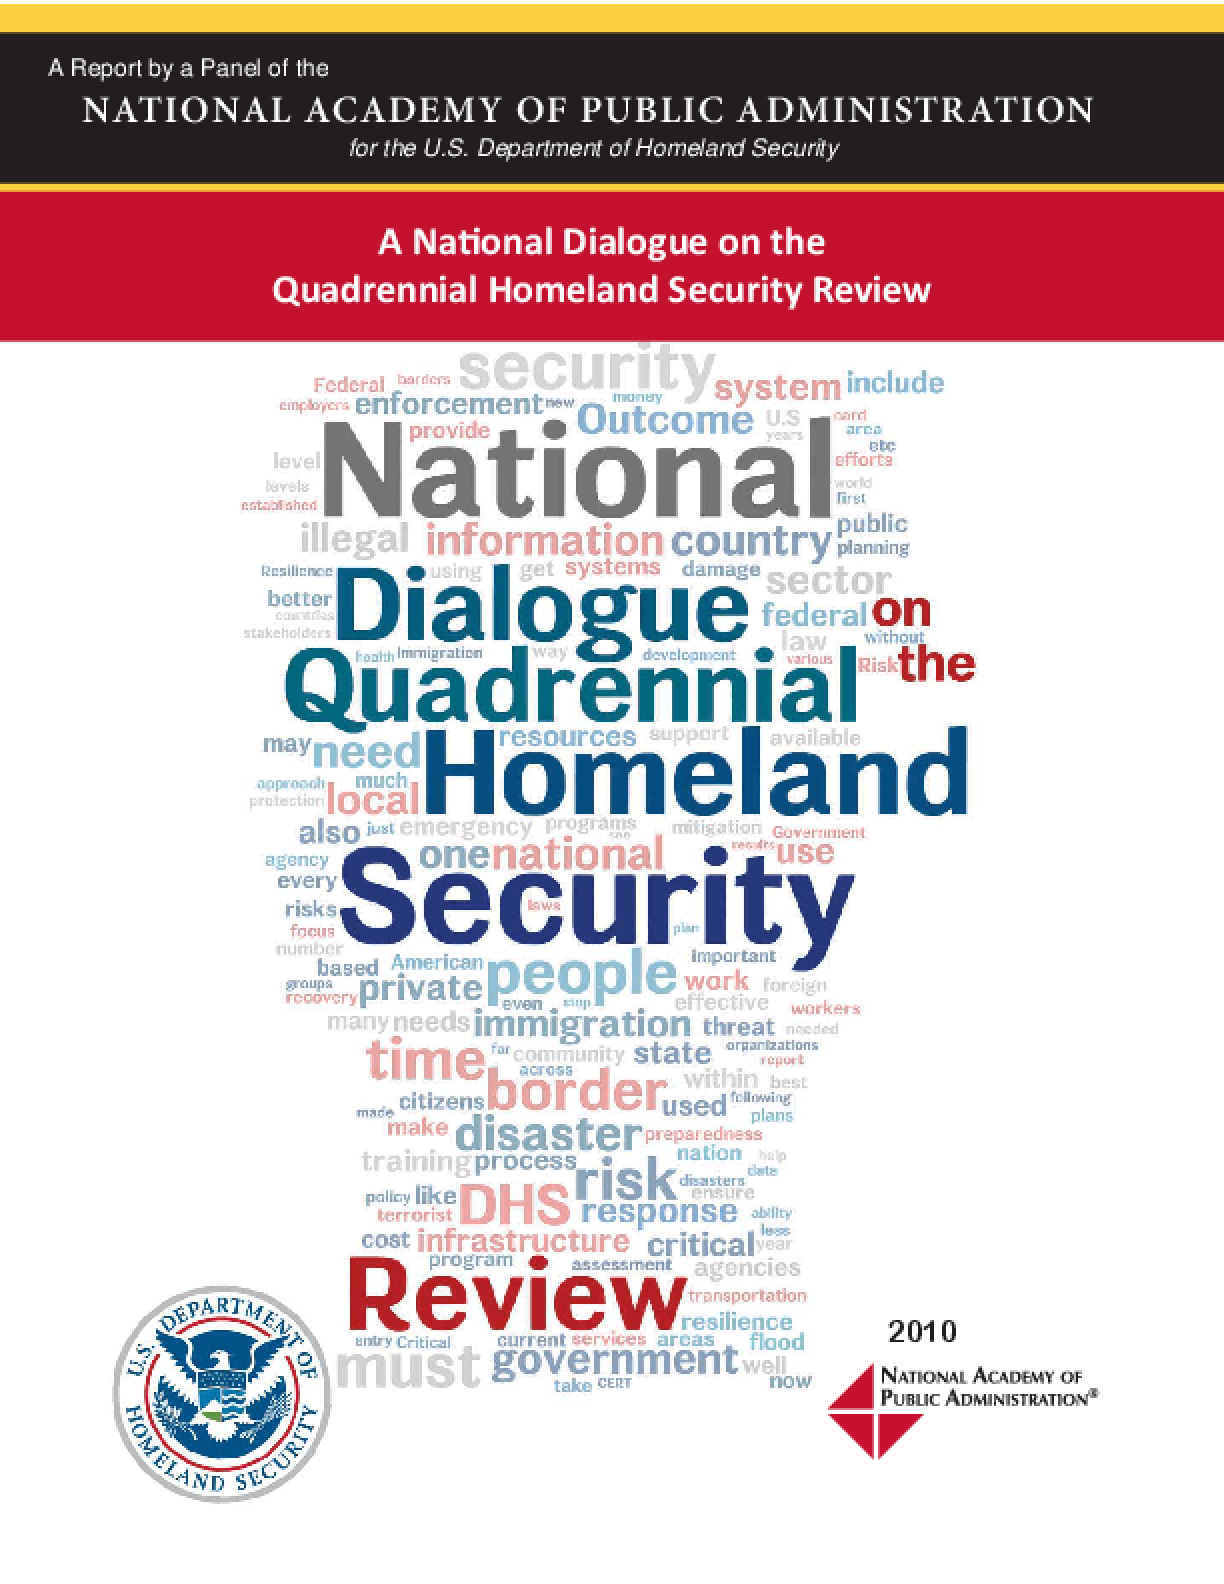 The National Dialogue on the Quadrennial Homeland Security Review